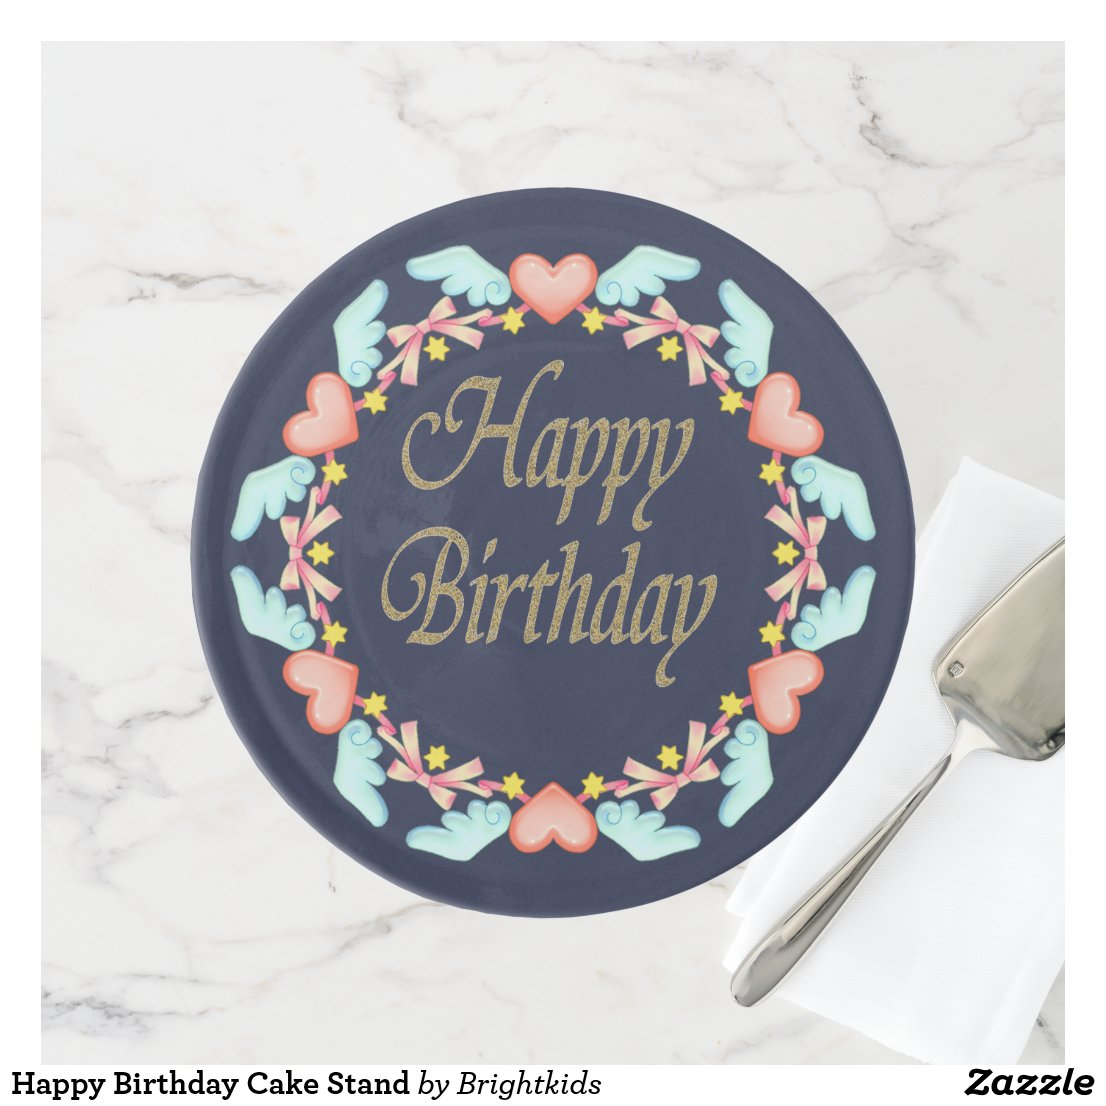 Happy Birthday Cake Stand